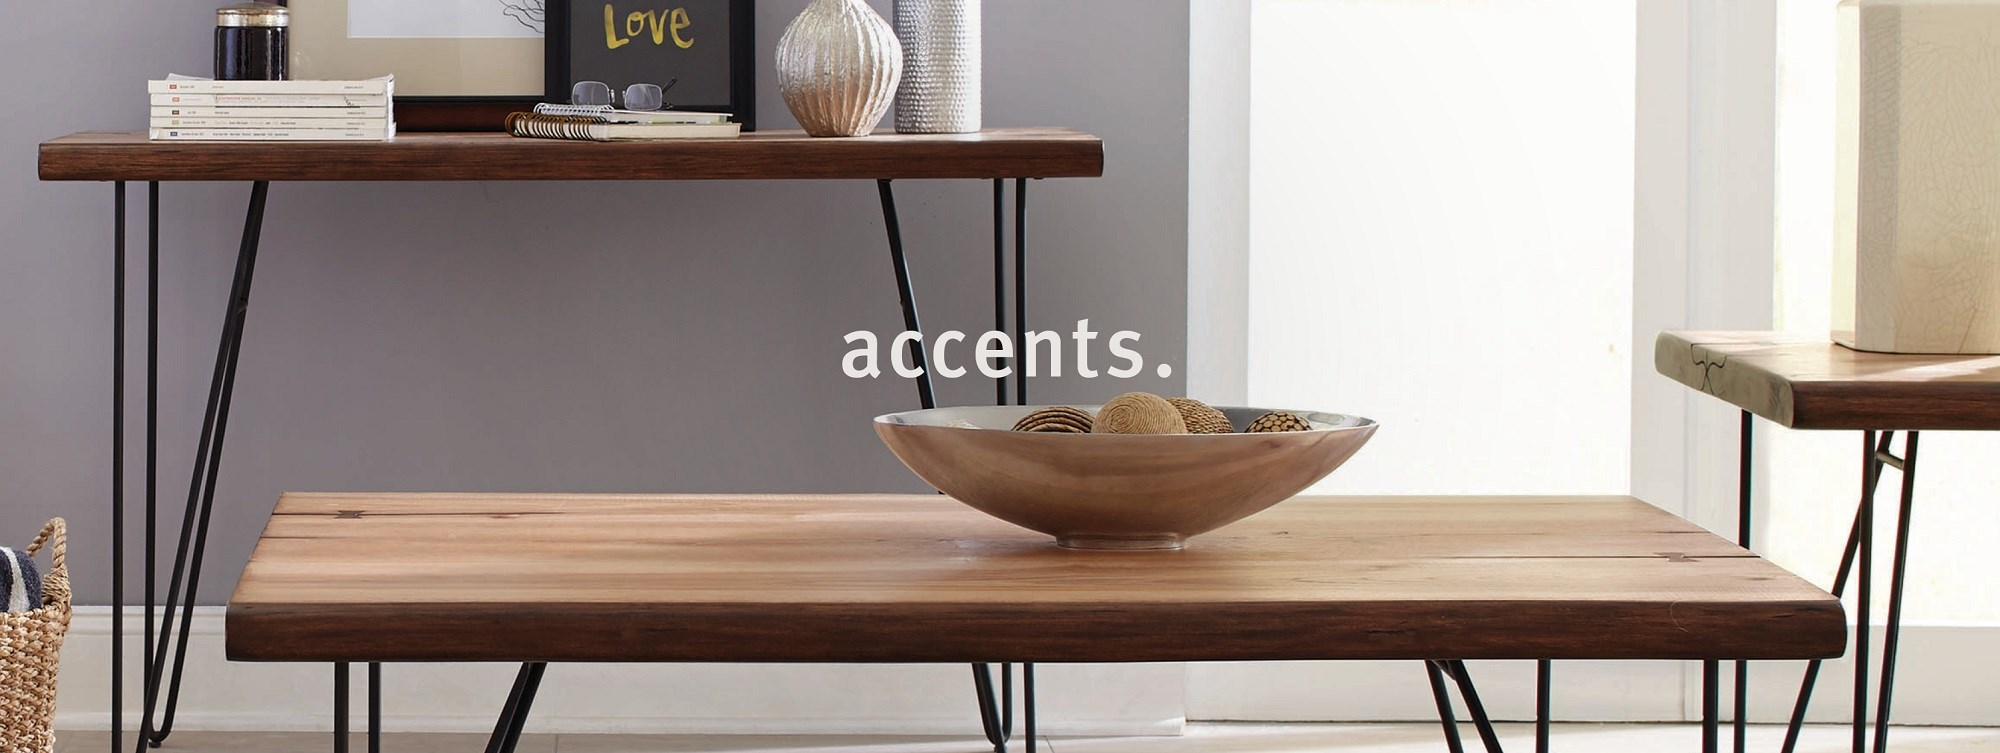 Shop Accent Furniture Abode Hawaii S Online Home Store